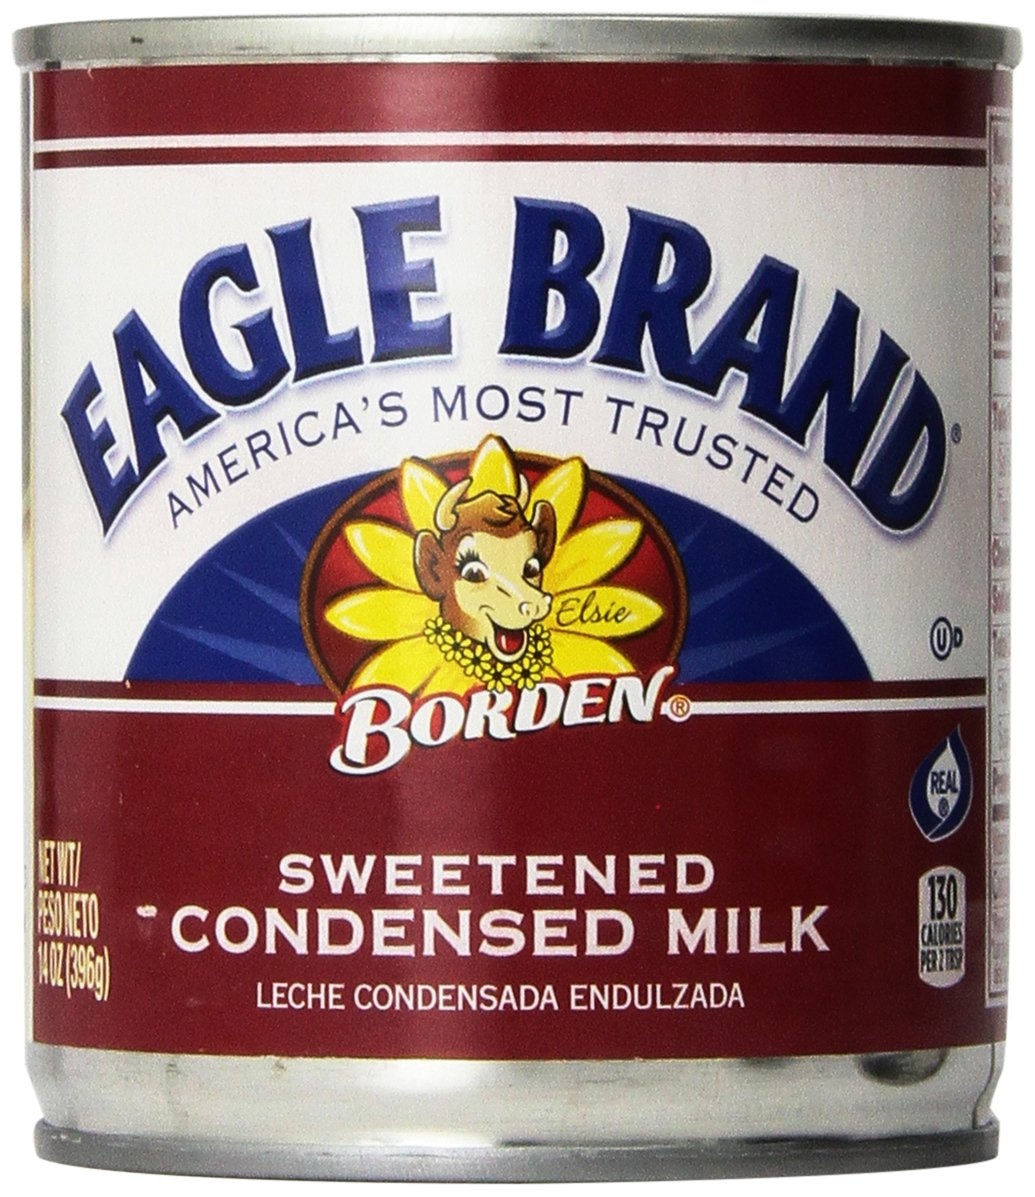 How many grams per can of condensed milk? Classification, benefit and harm of a product 47